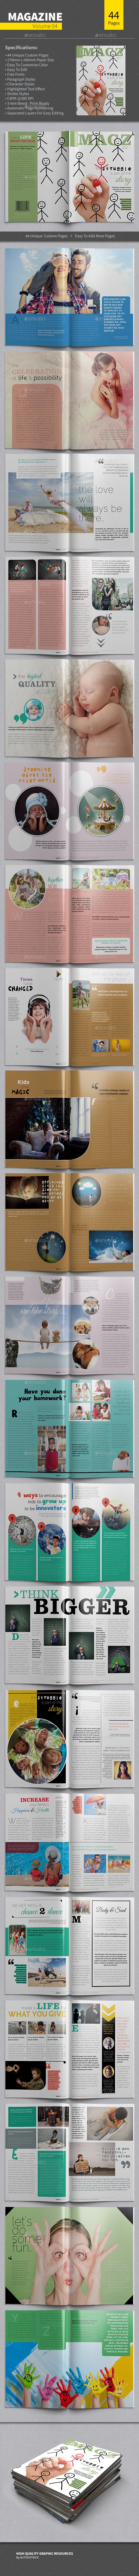 Magazine Template - Volume 04 - Magazines Print Templates